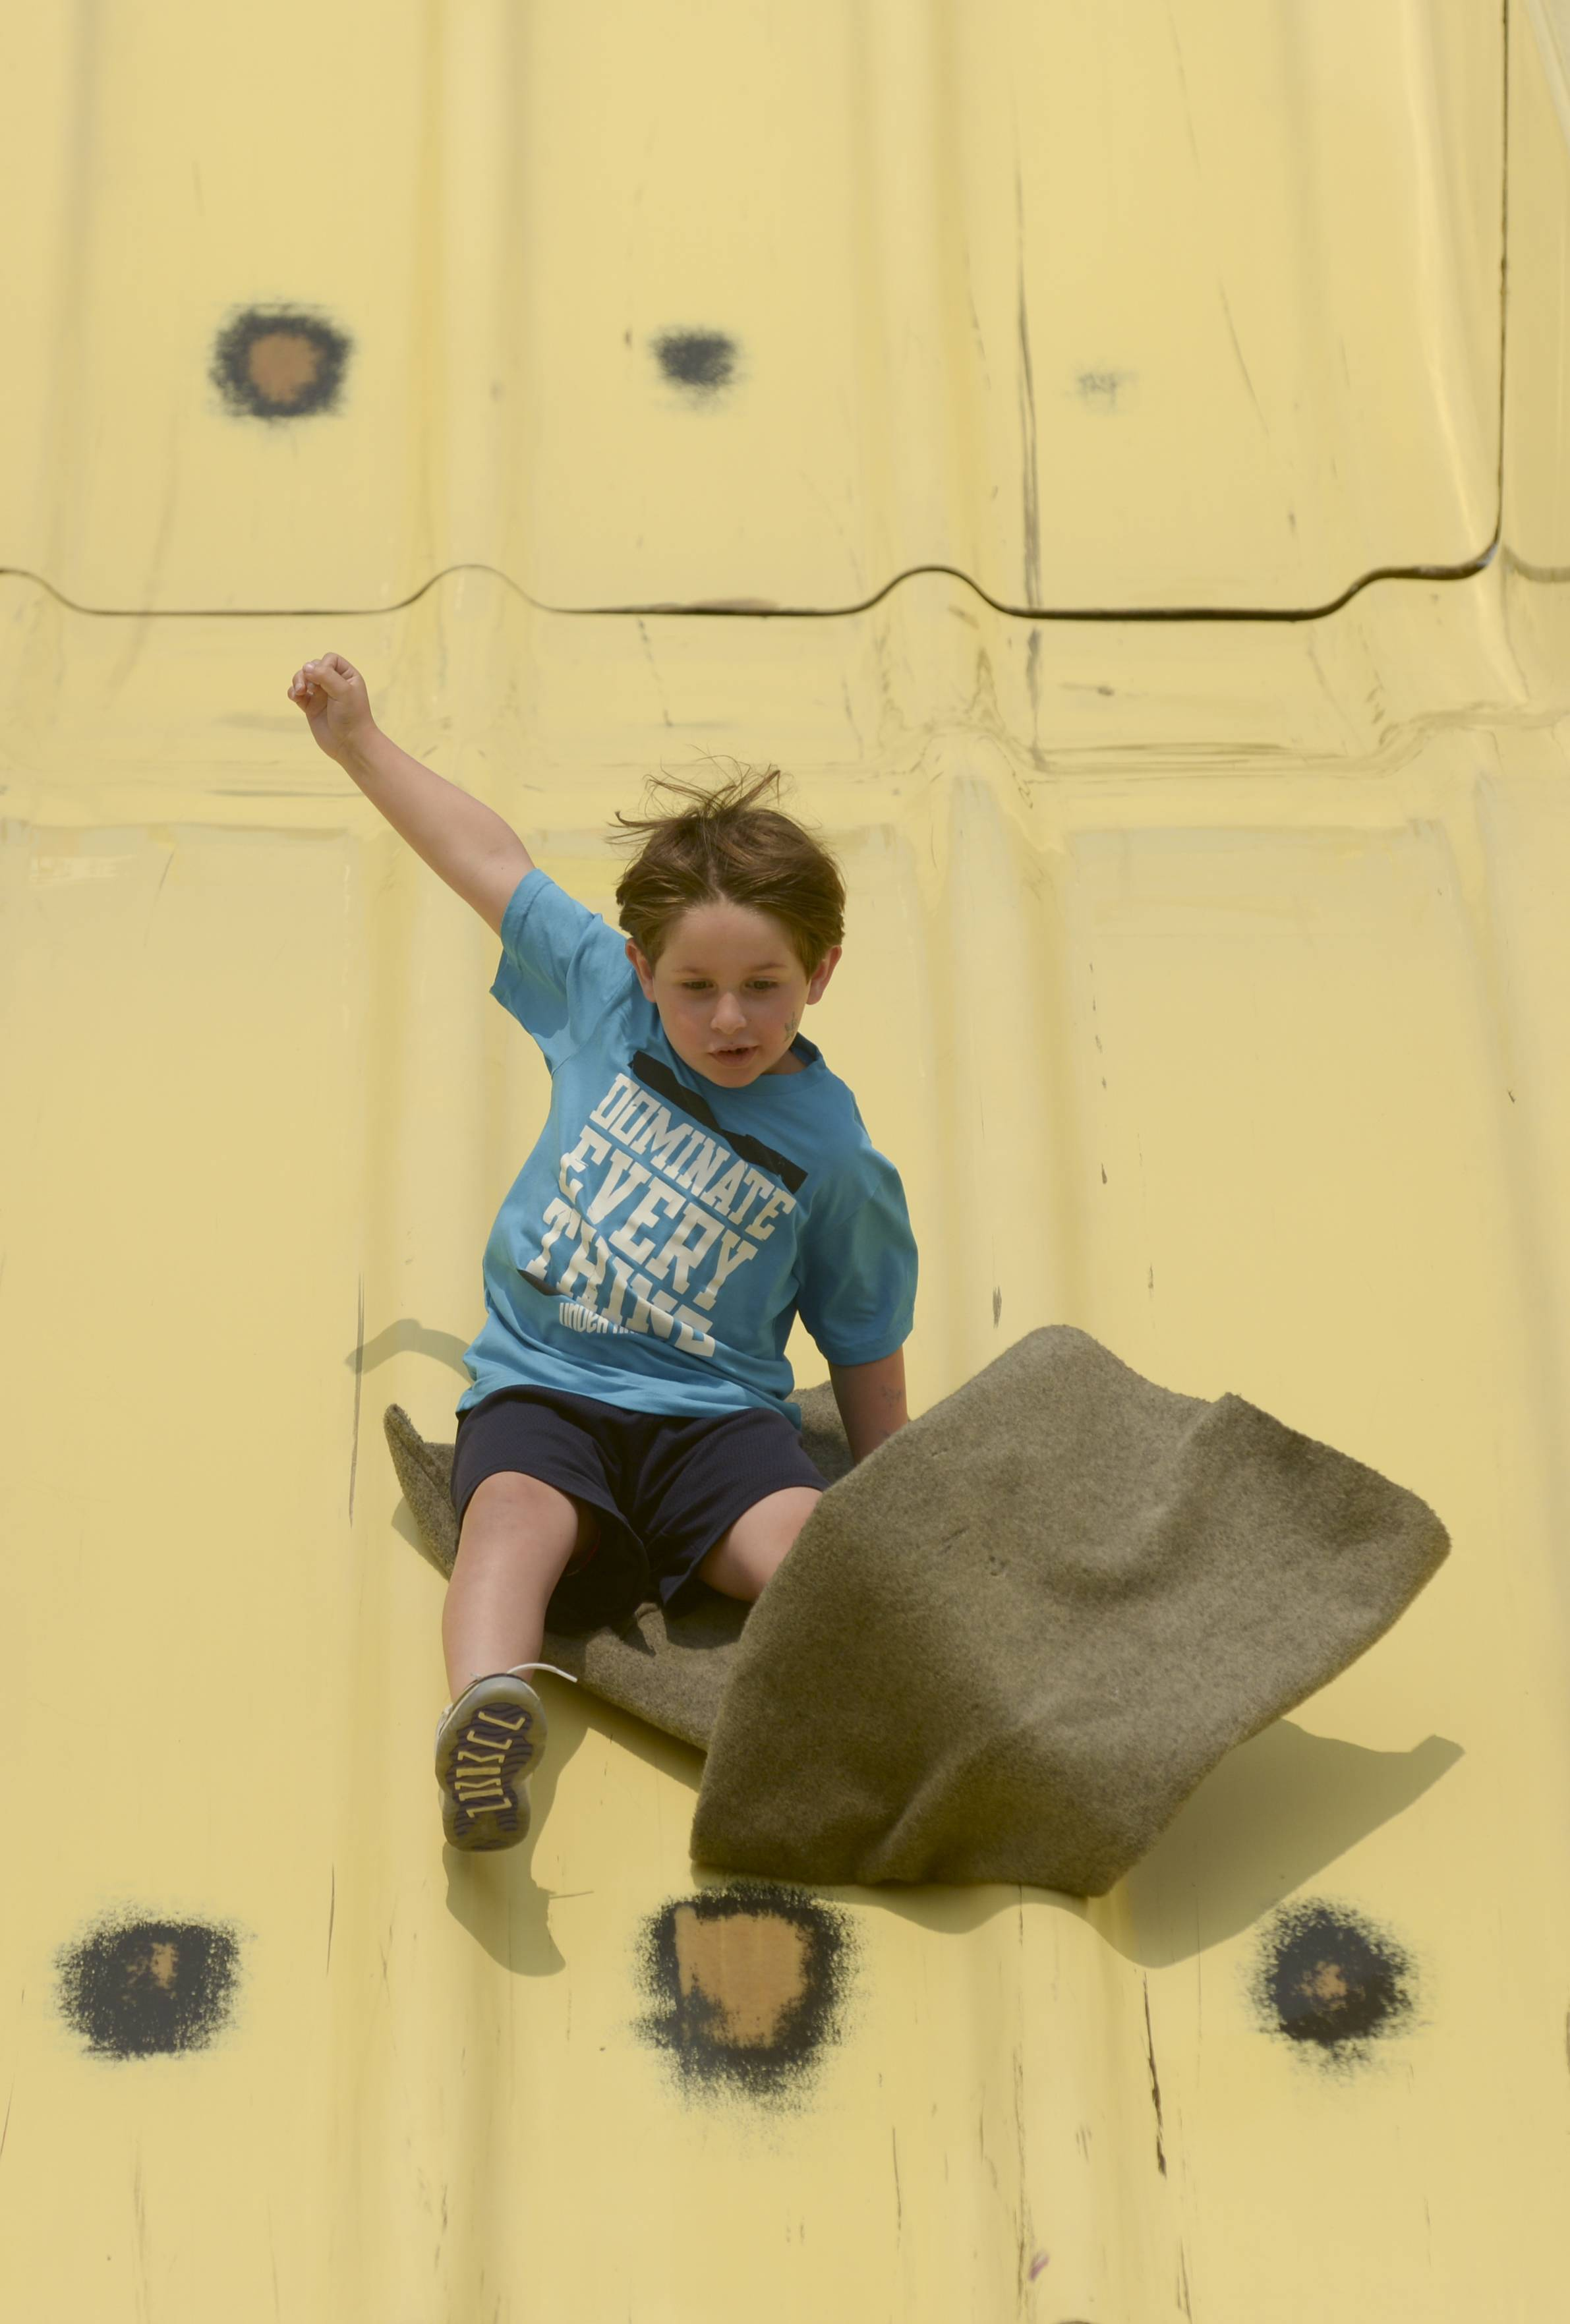 Jeremy Zamost, 6, of Libertyville zooms down the Fun Slide on Saturday at the Vernon Hills Summer Celebration.